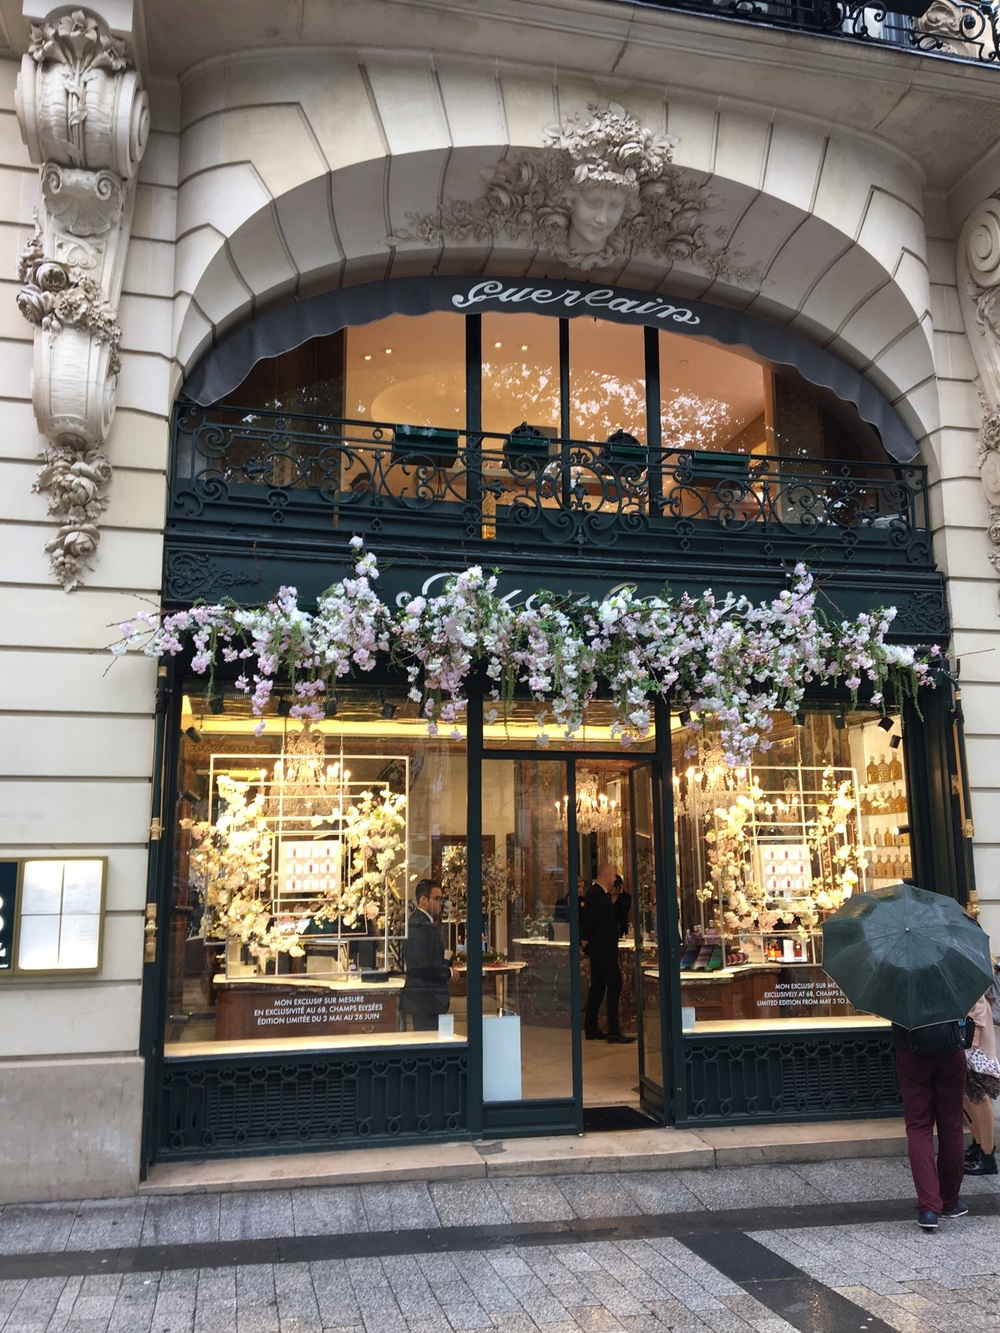 Planning an expensive purchase abroad? Be sure to get your VAT back, get the paperwork and save the packaging too!  A parfum store along Champs Elysses.